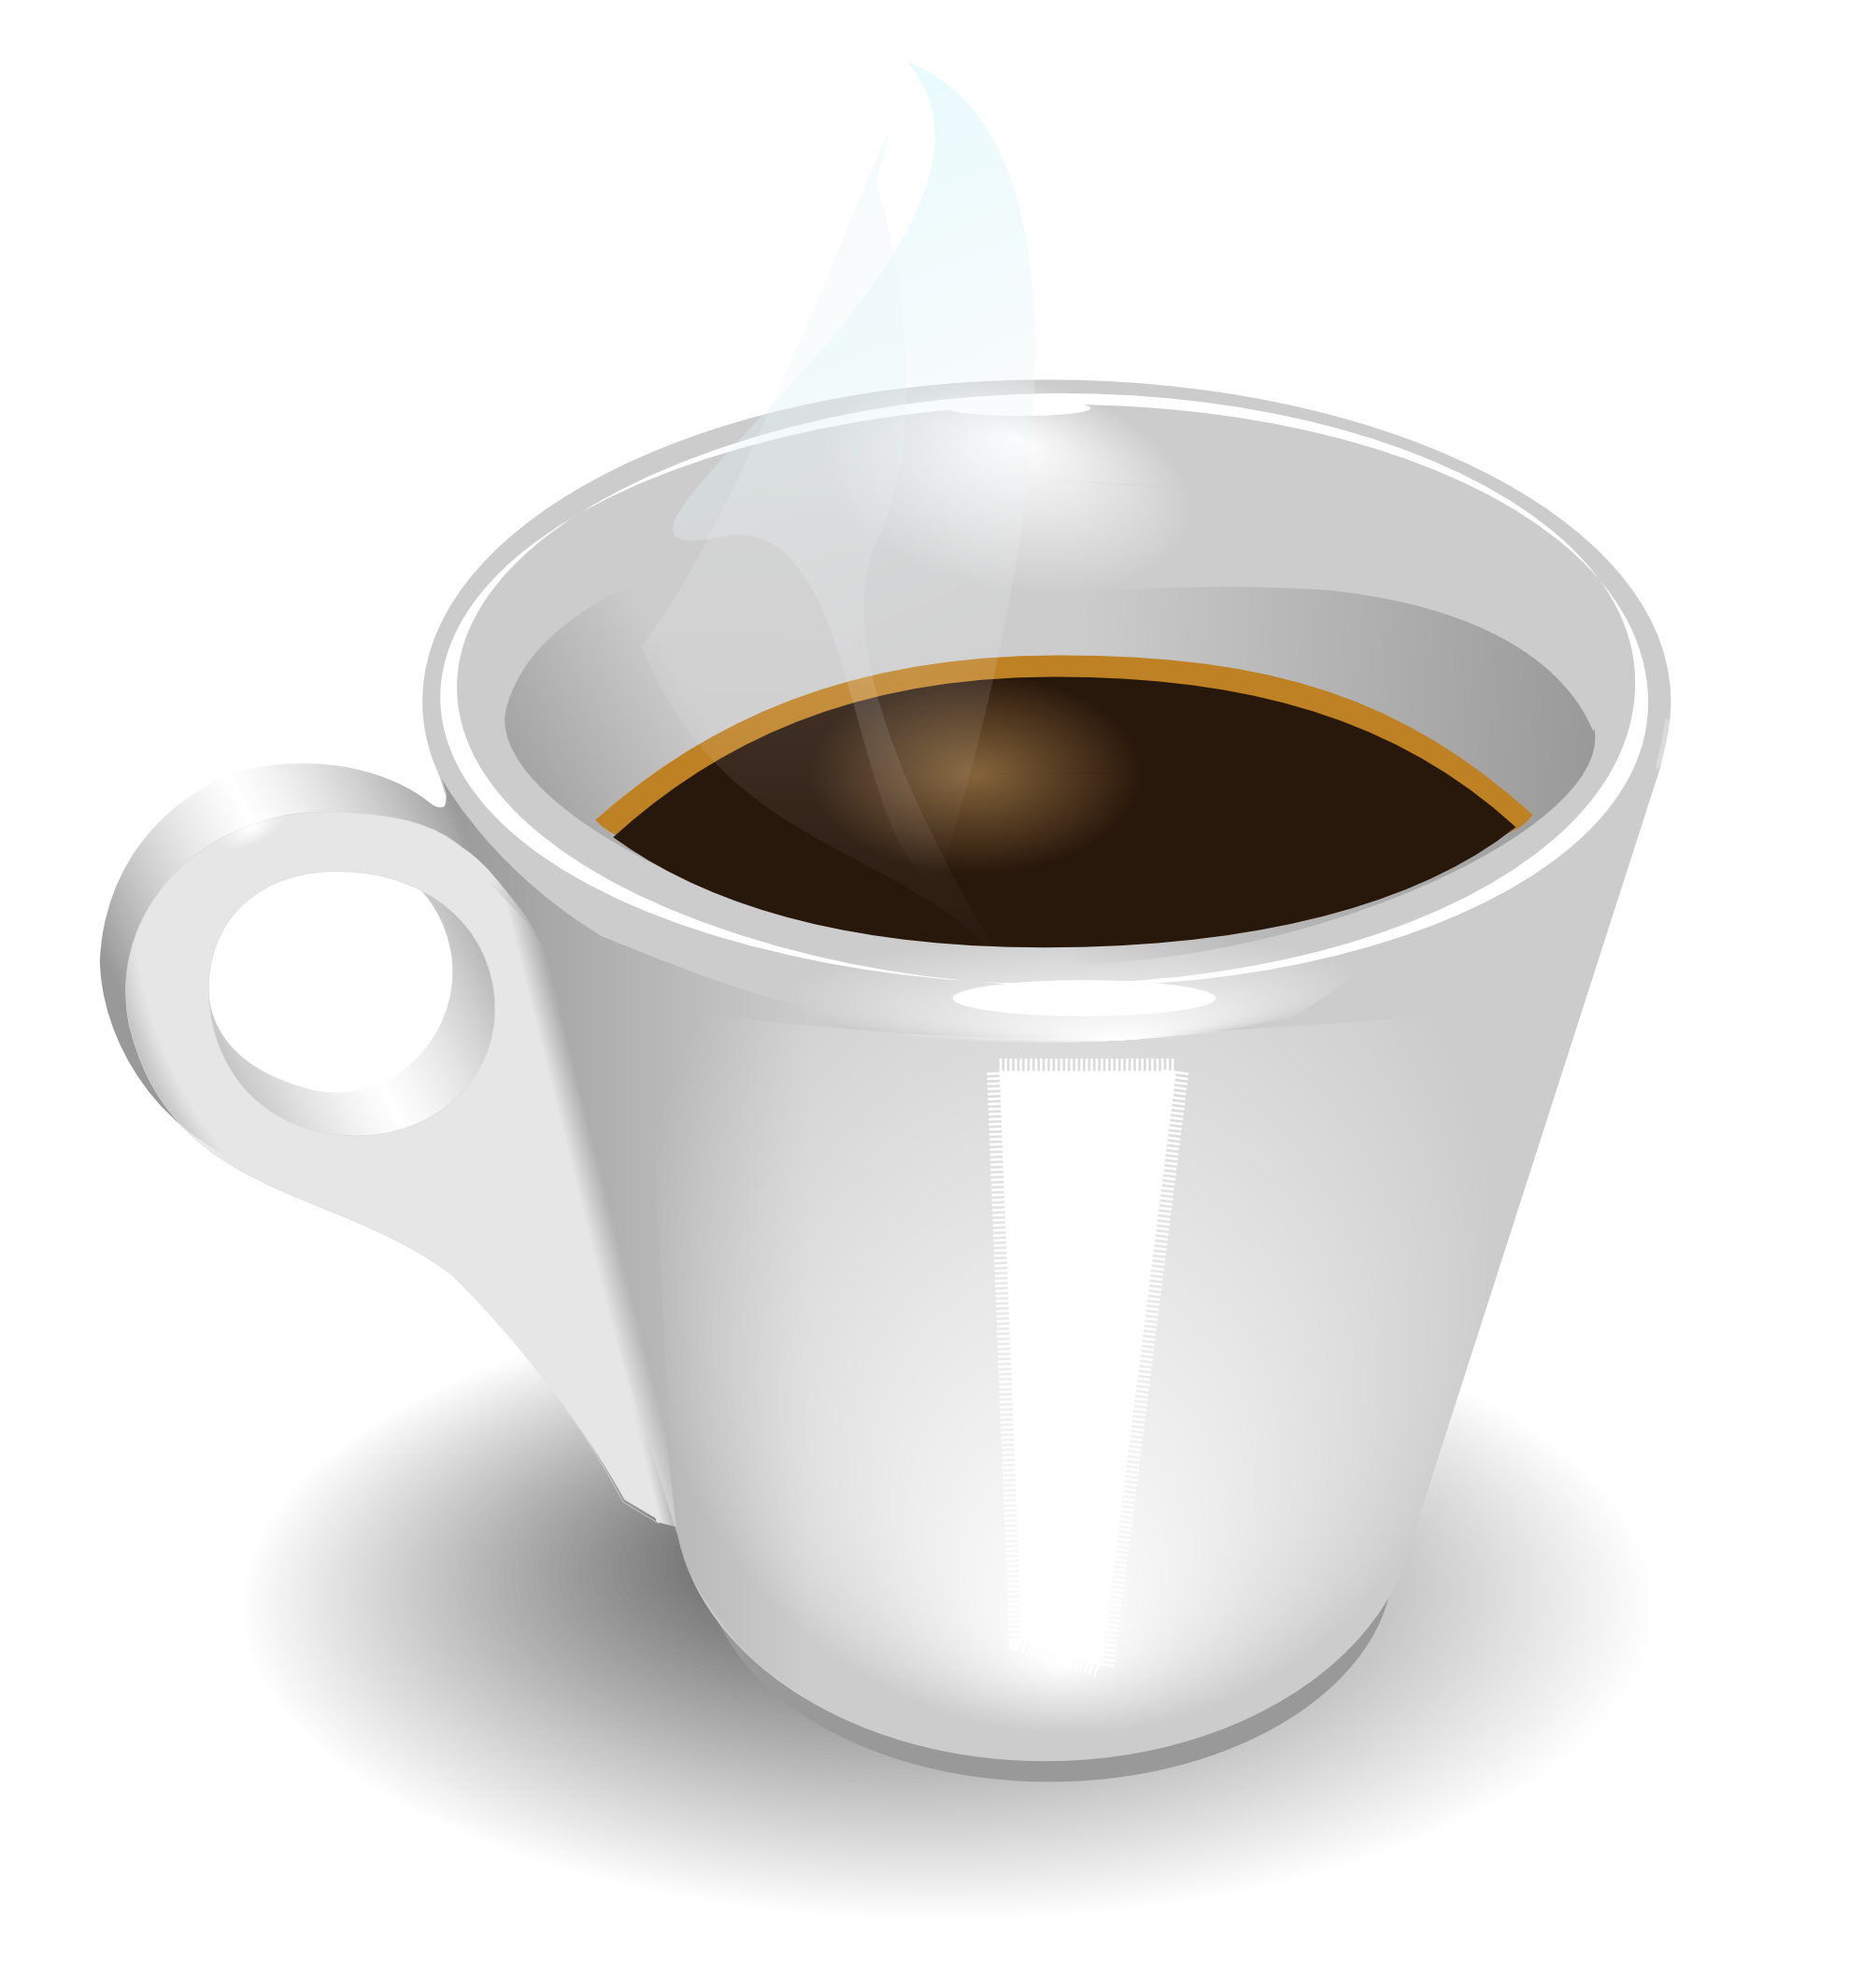 PNG Cup Of Coffee - 133137